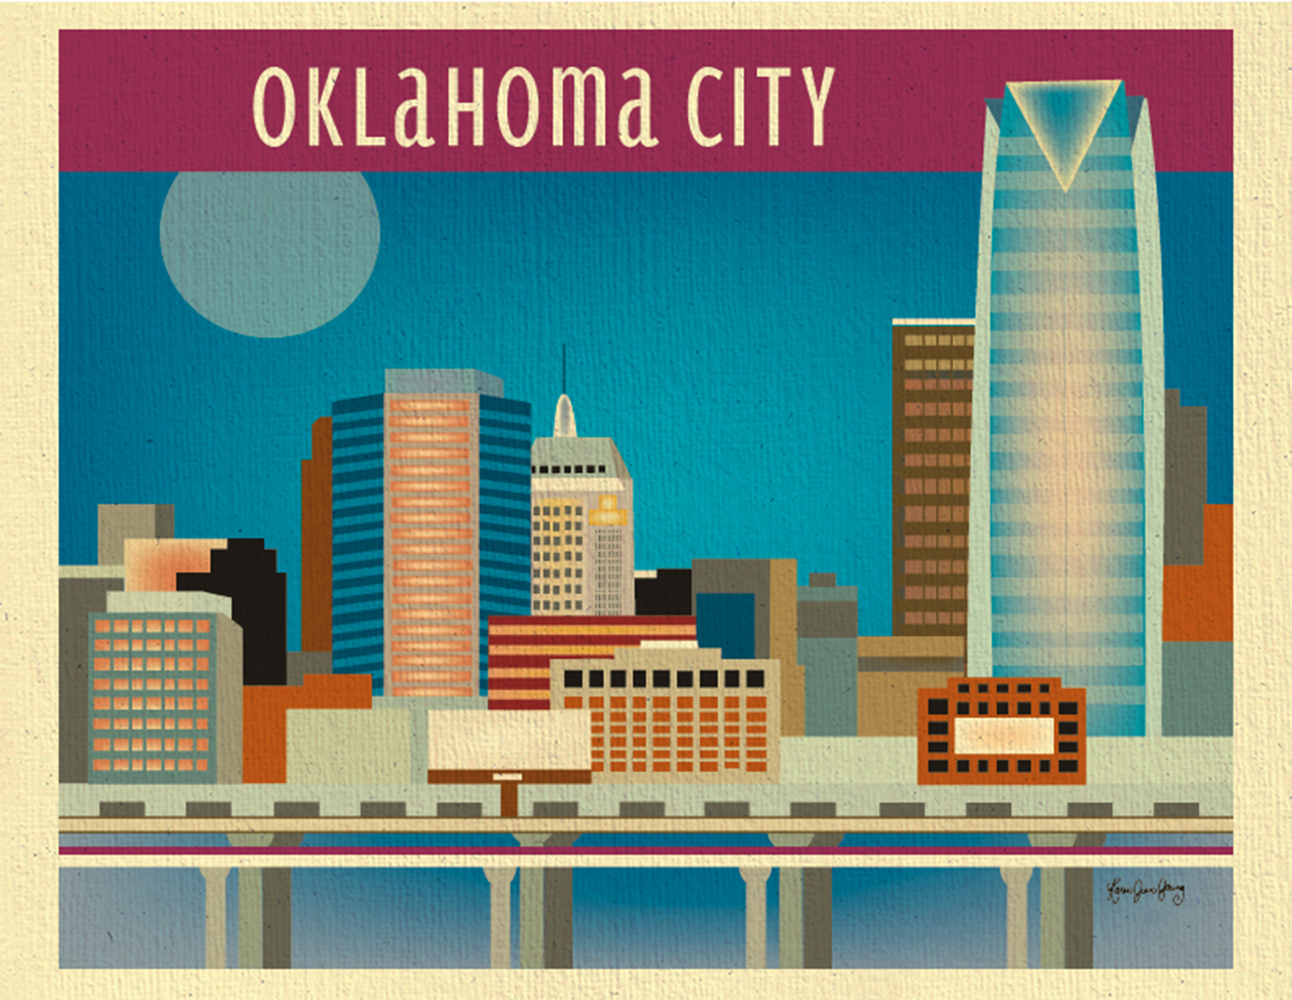 Oklahoma City Oklahoma Skyline City Wall Art 11 X 14 Print For Gifts New Home And Nursery From Loose Petals